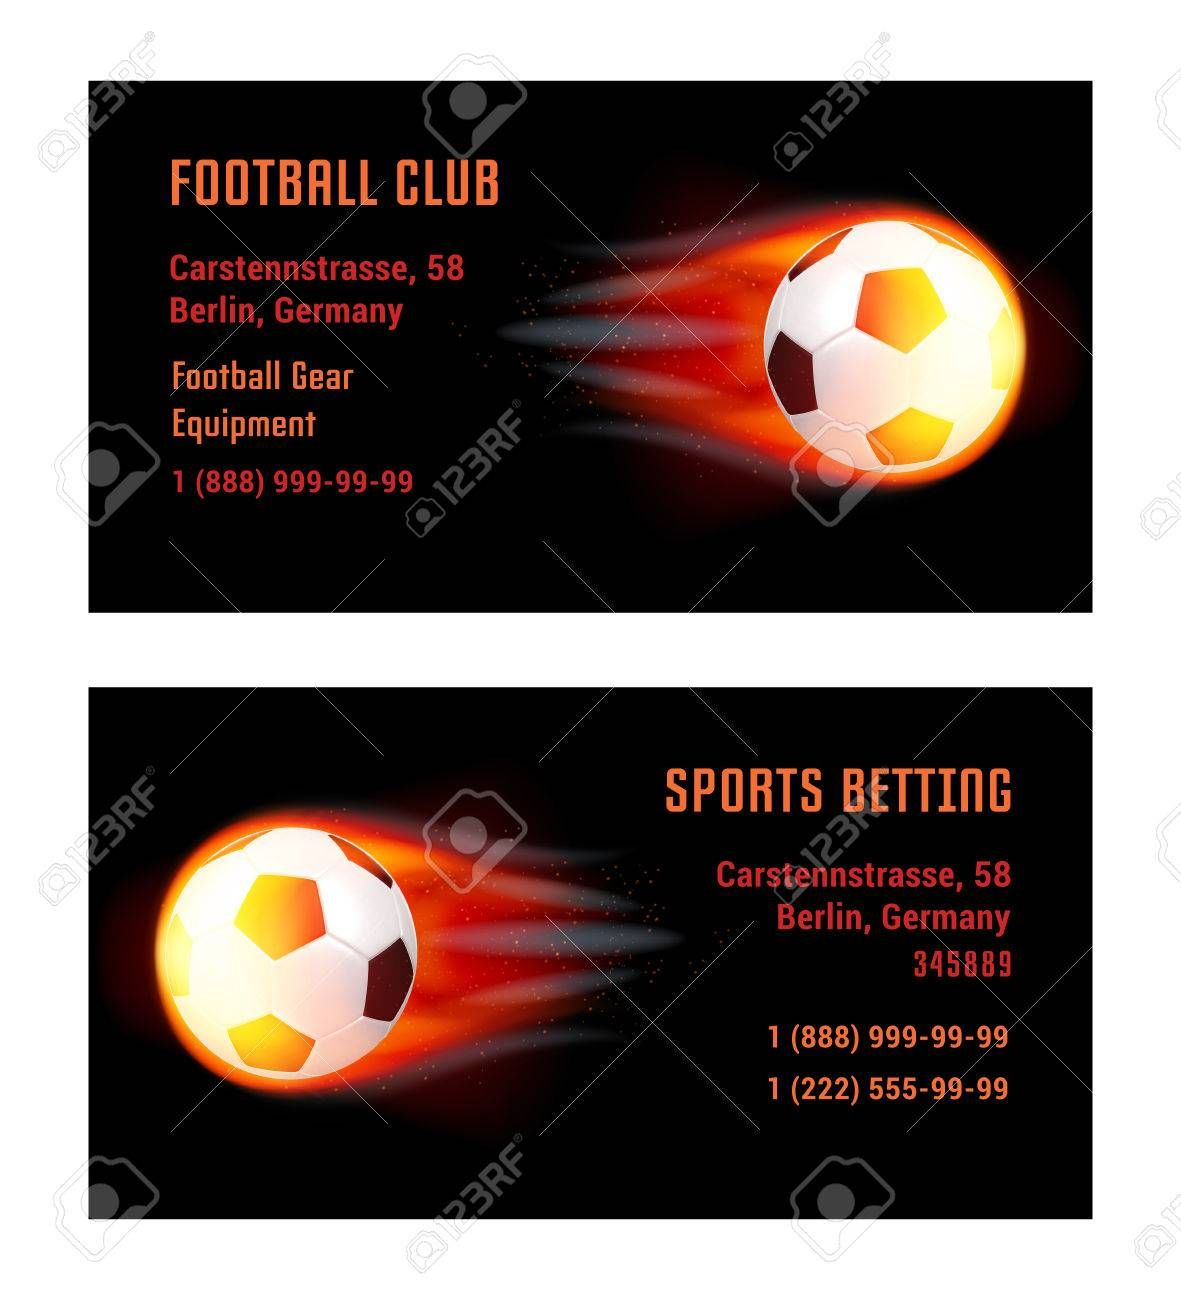 888 betting football cards racing betting offers